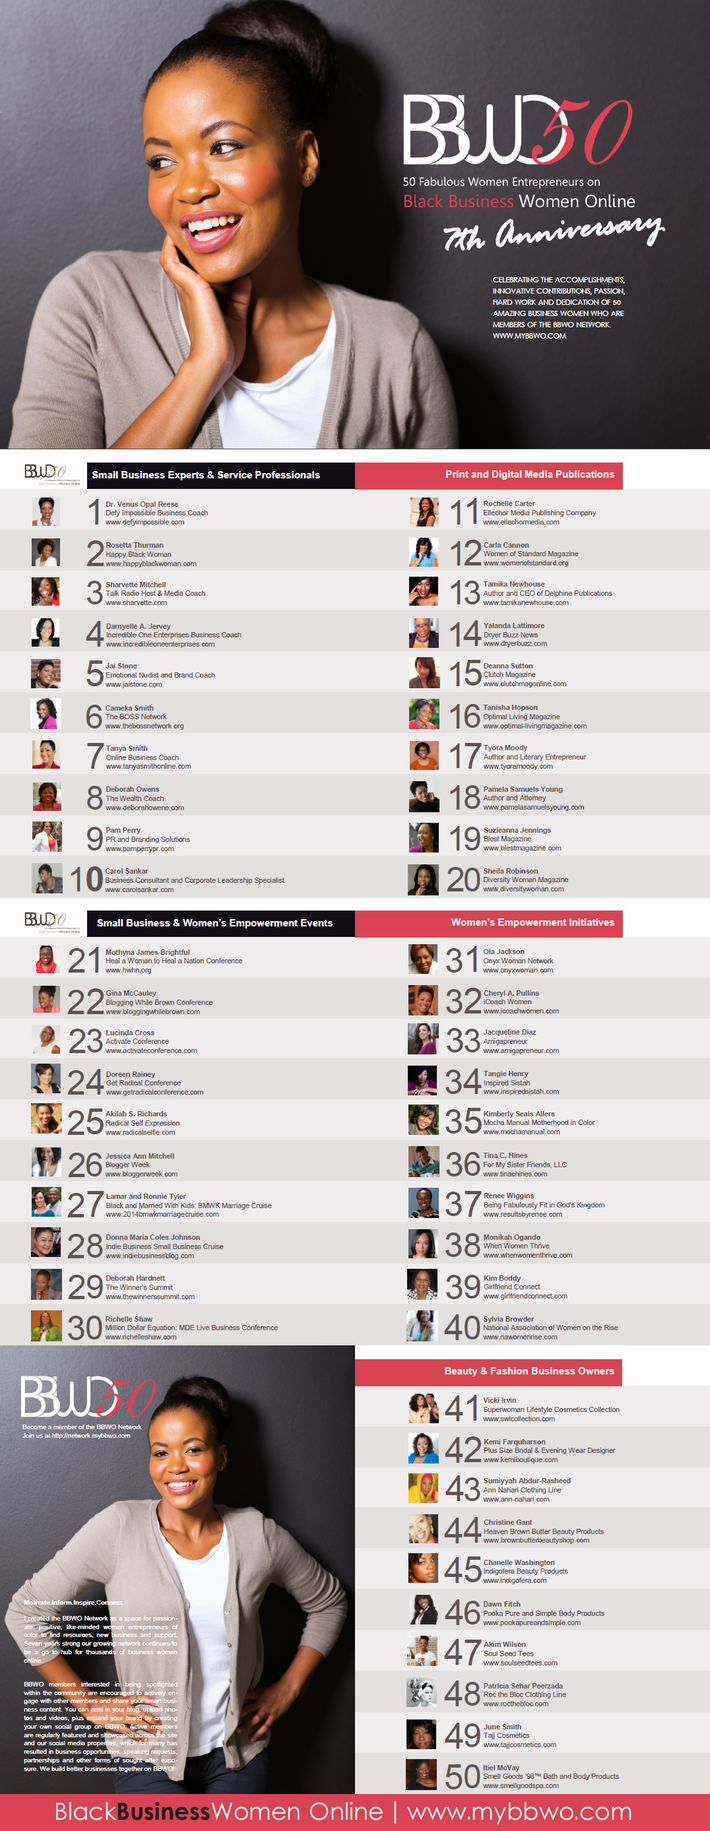 BBWO 50 Fabulous Women Entrepreneurs - 2014 Honorees List